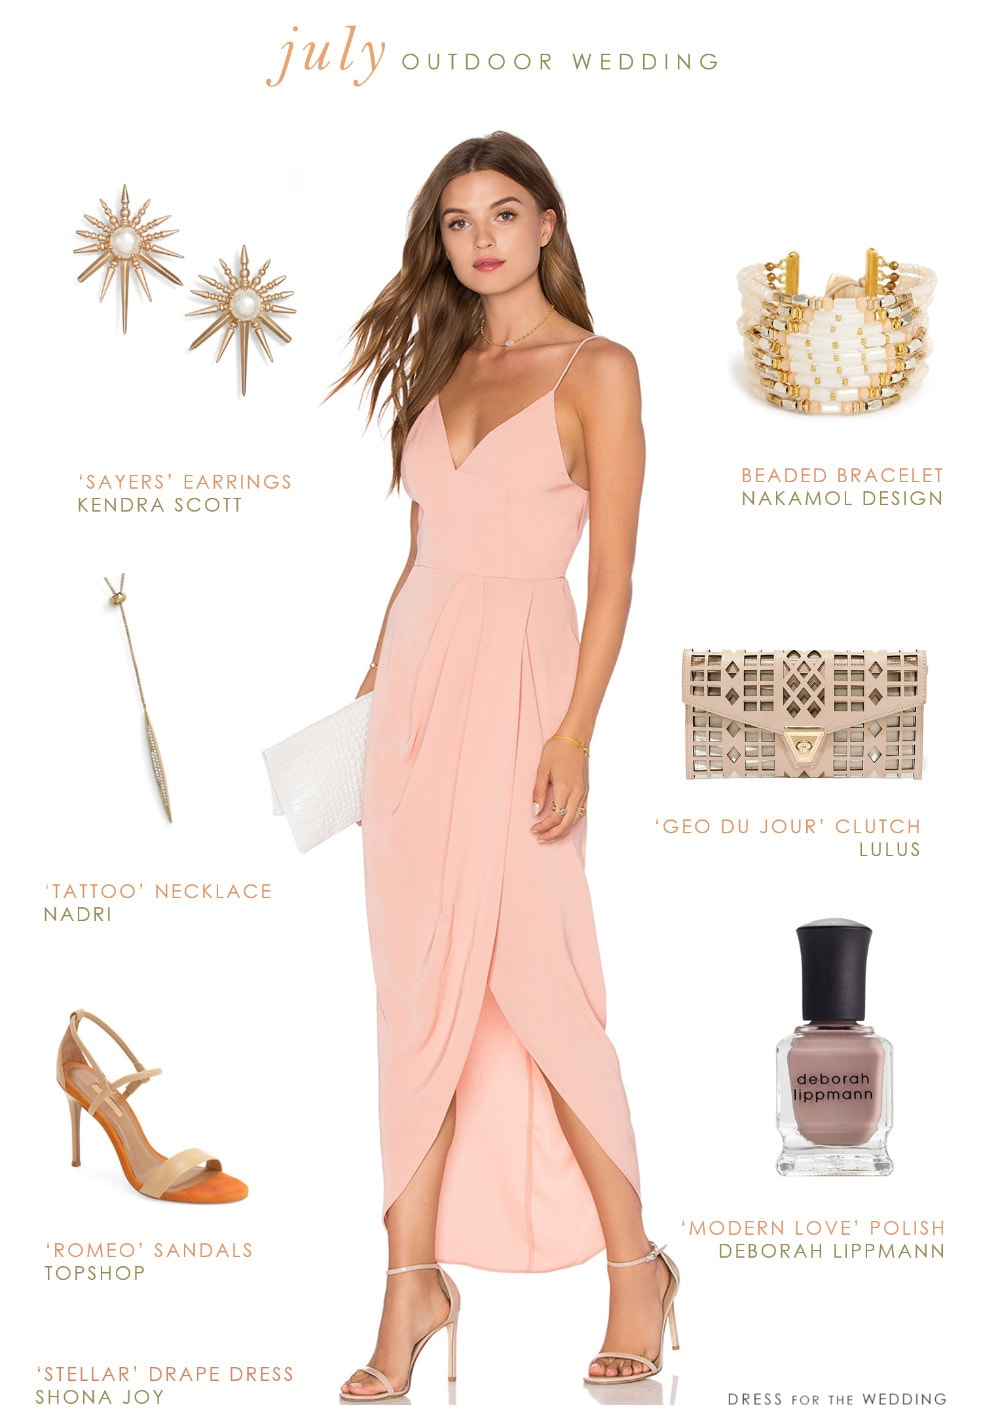 wear outdoor july wedding wedding guest attire What To Wear to a July Outdoor Wedding